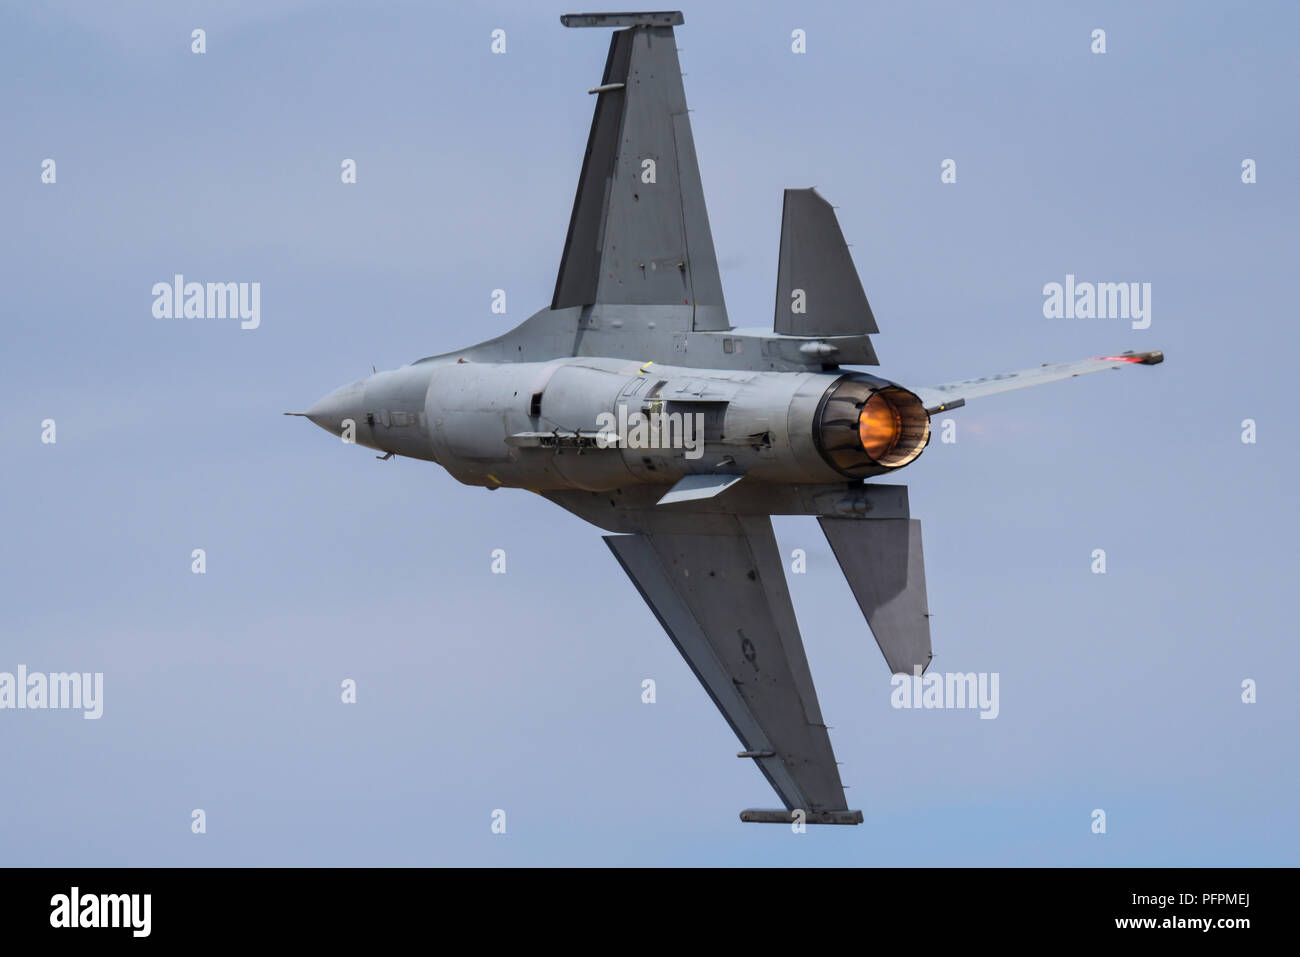 lockheed-martin-f-16-fighting-falcon-fighter-jet-plane-at-the-farnborough-international-airshow-of-480th-fighter-squadron-from-spangdahlen-germany-PFPMEJ.jpg